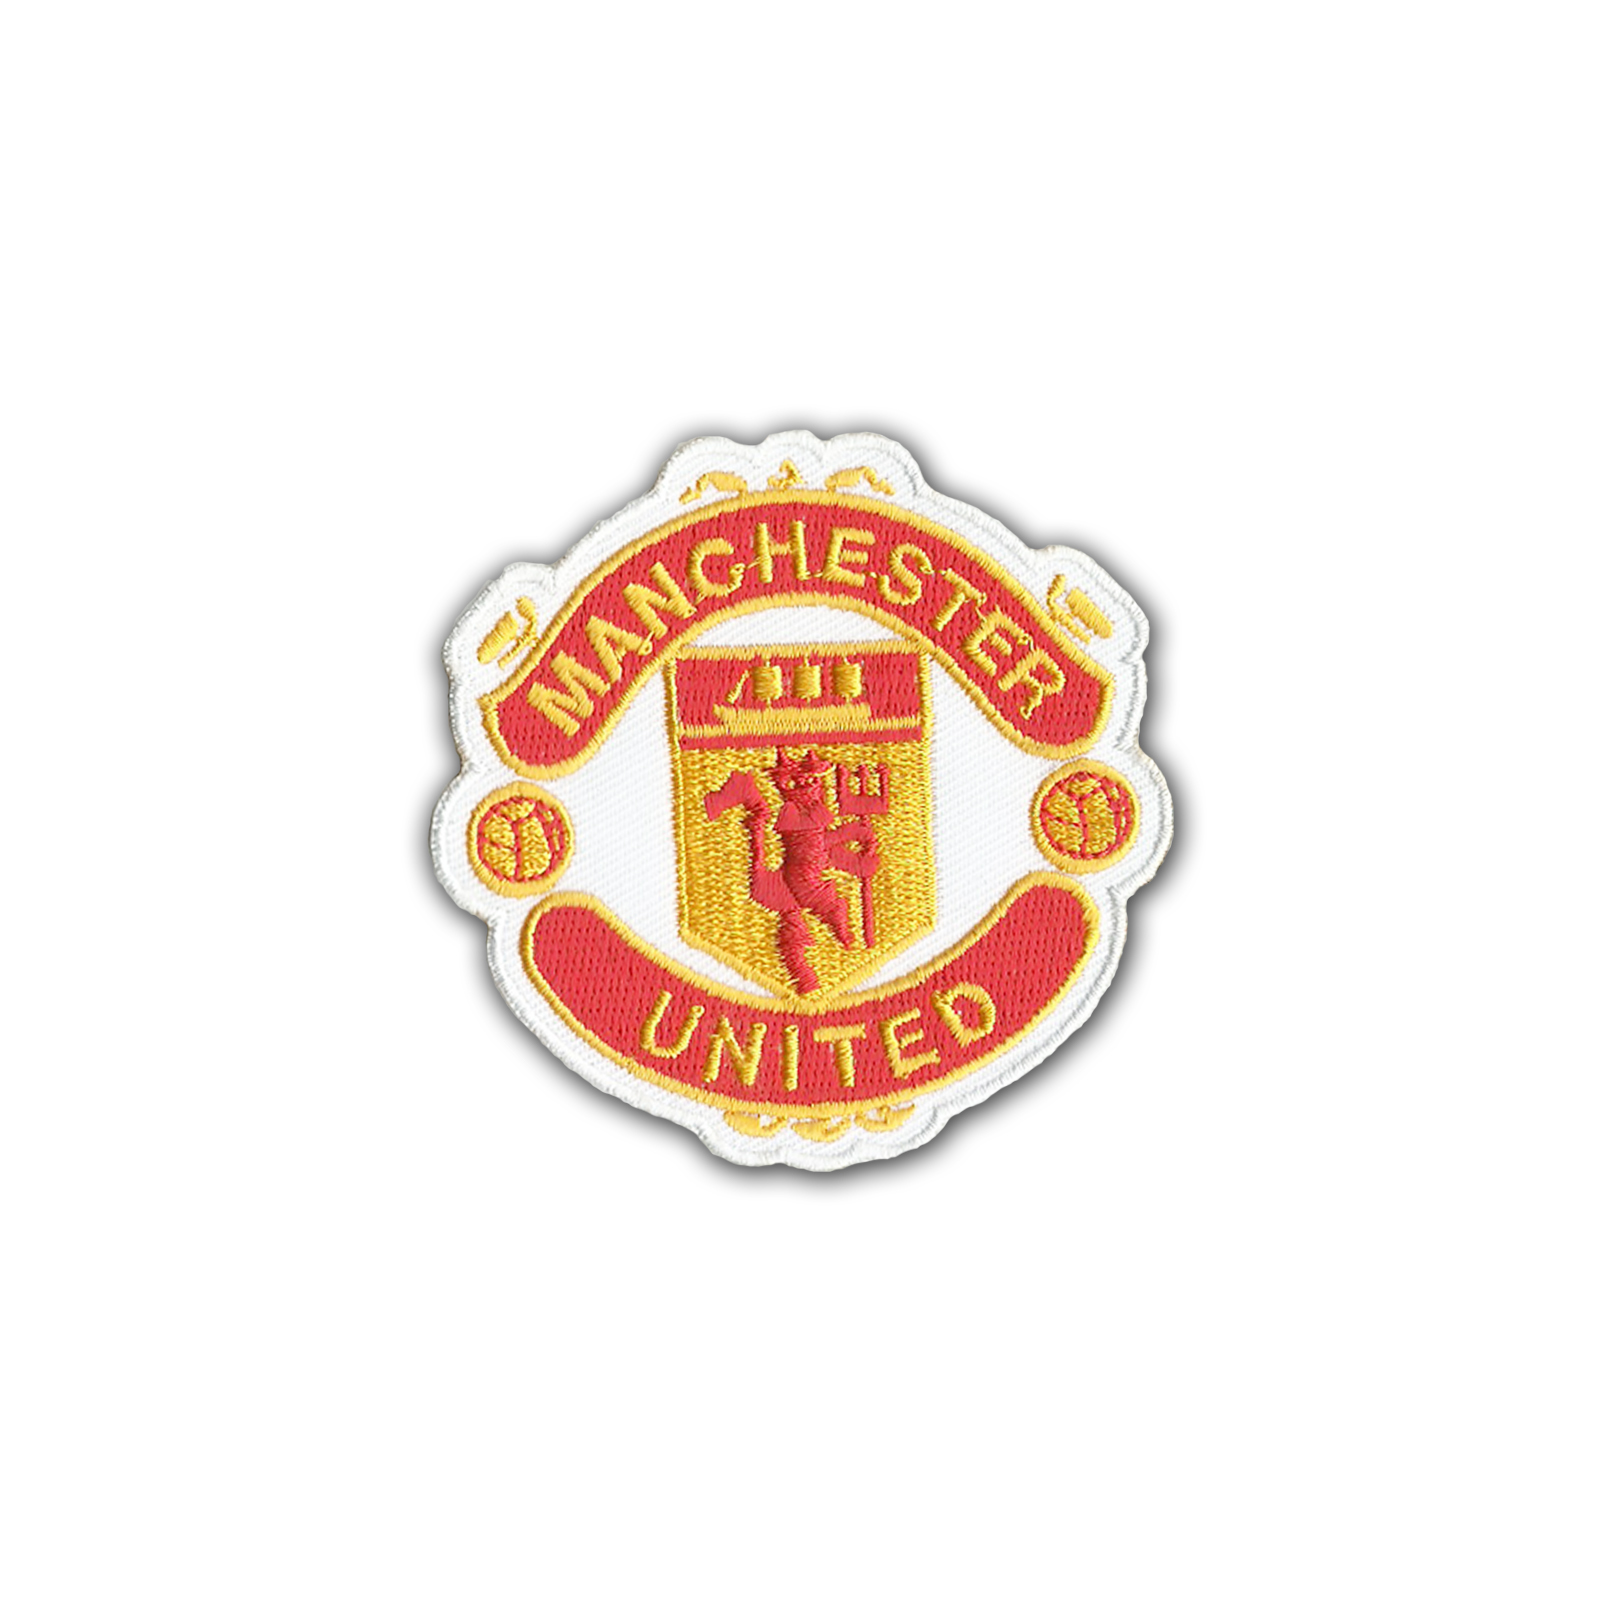 "MANCHESTER UNITED MUFC MAN U Embroidered Sew On iron Embroidered Patch 3"" Logo Sew Ironed On Badge Embroidery Applique Patch"